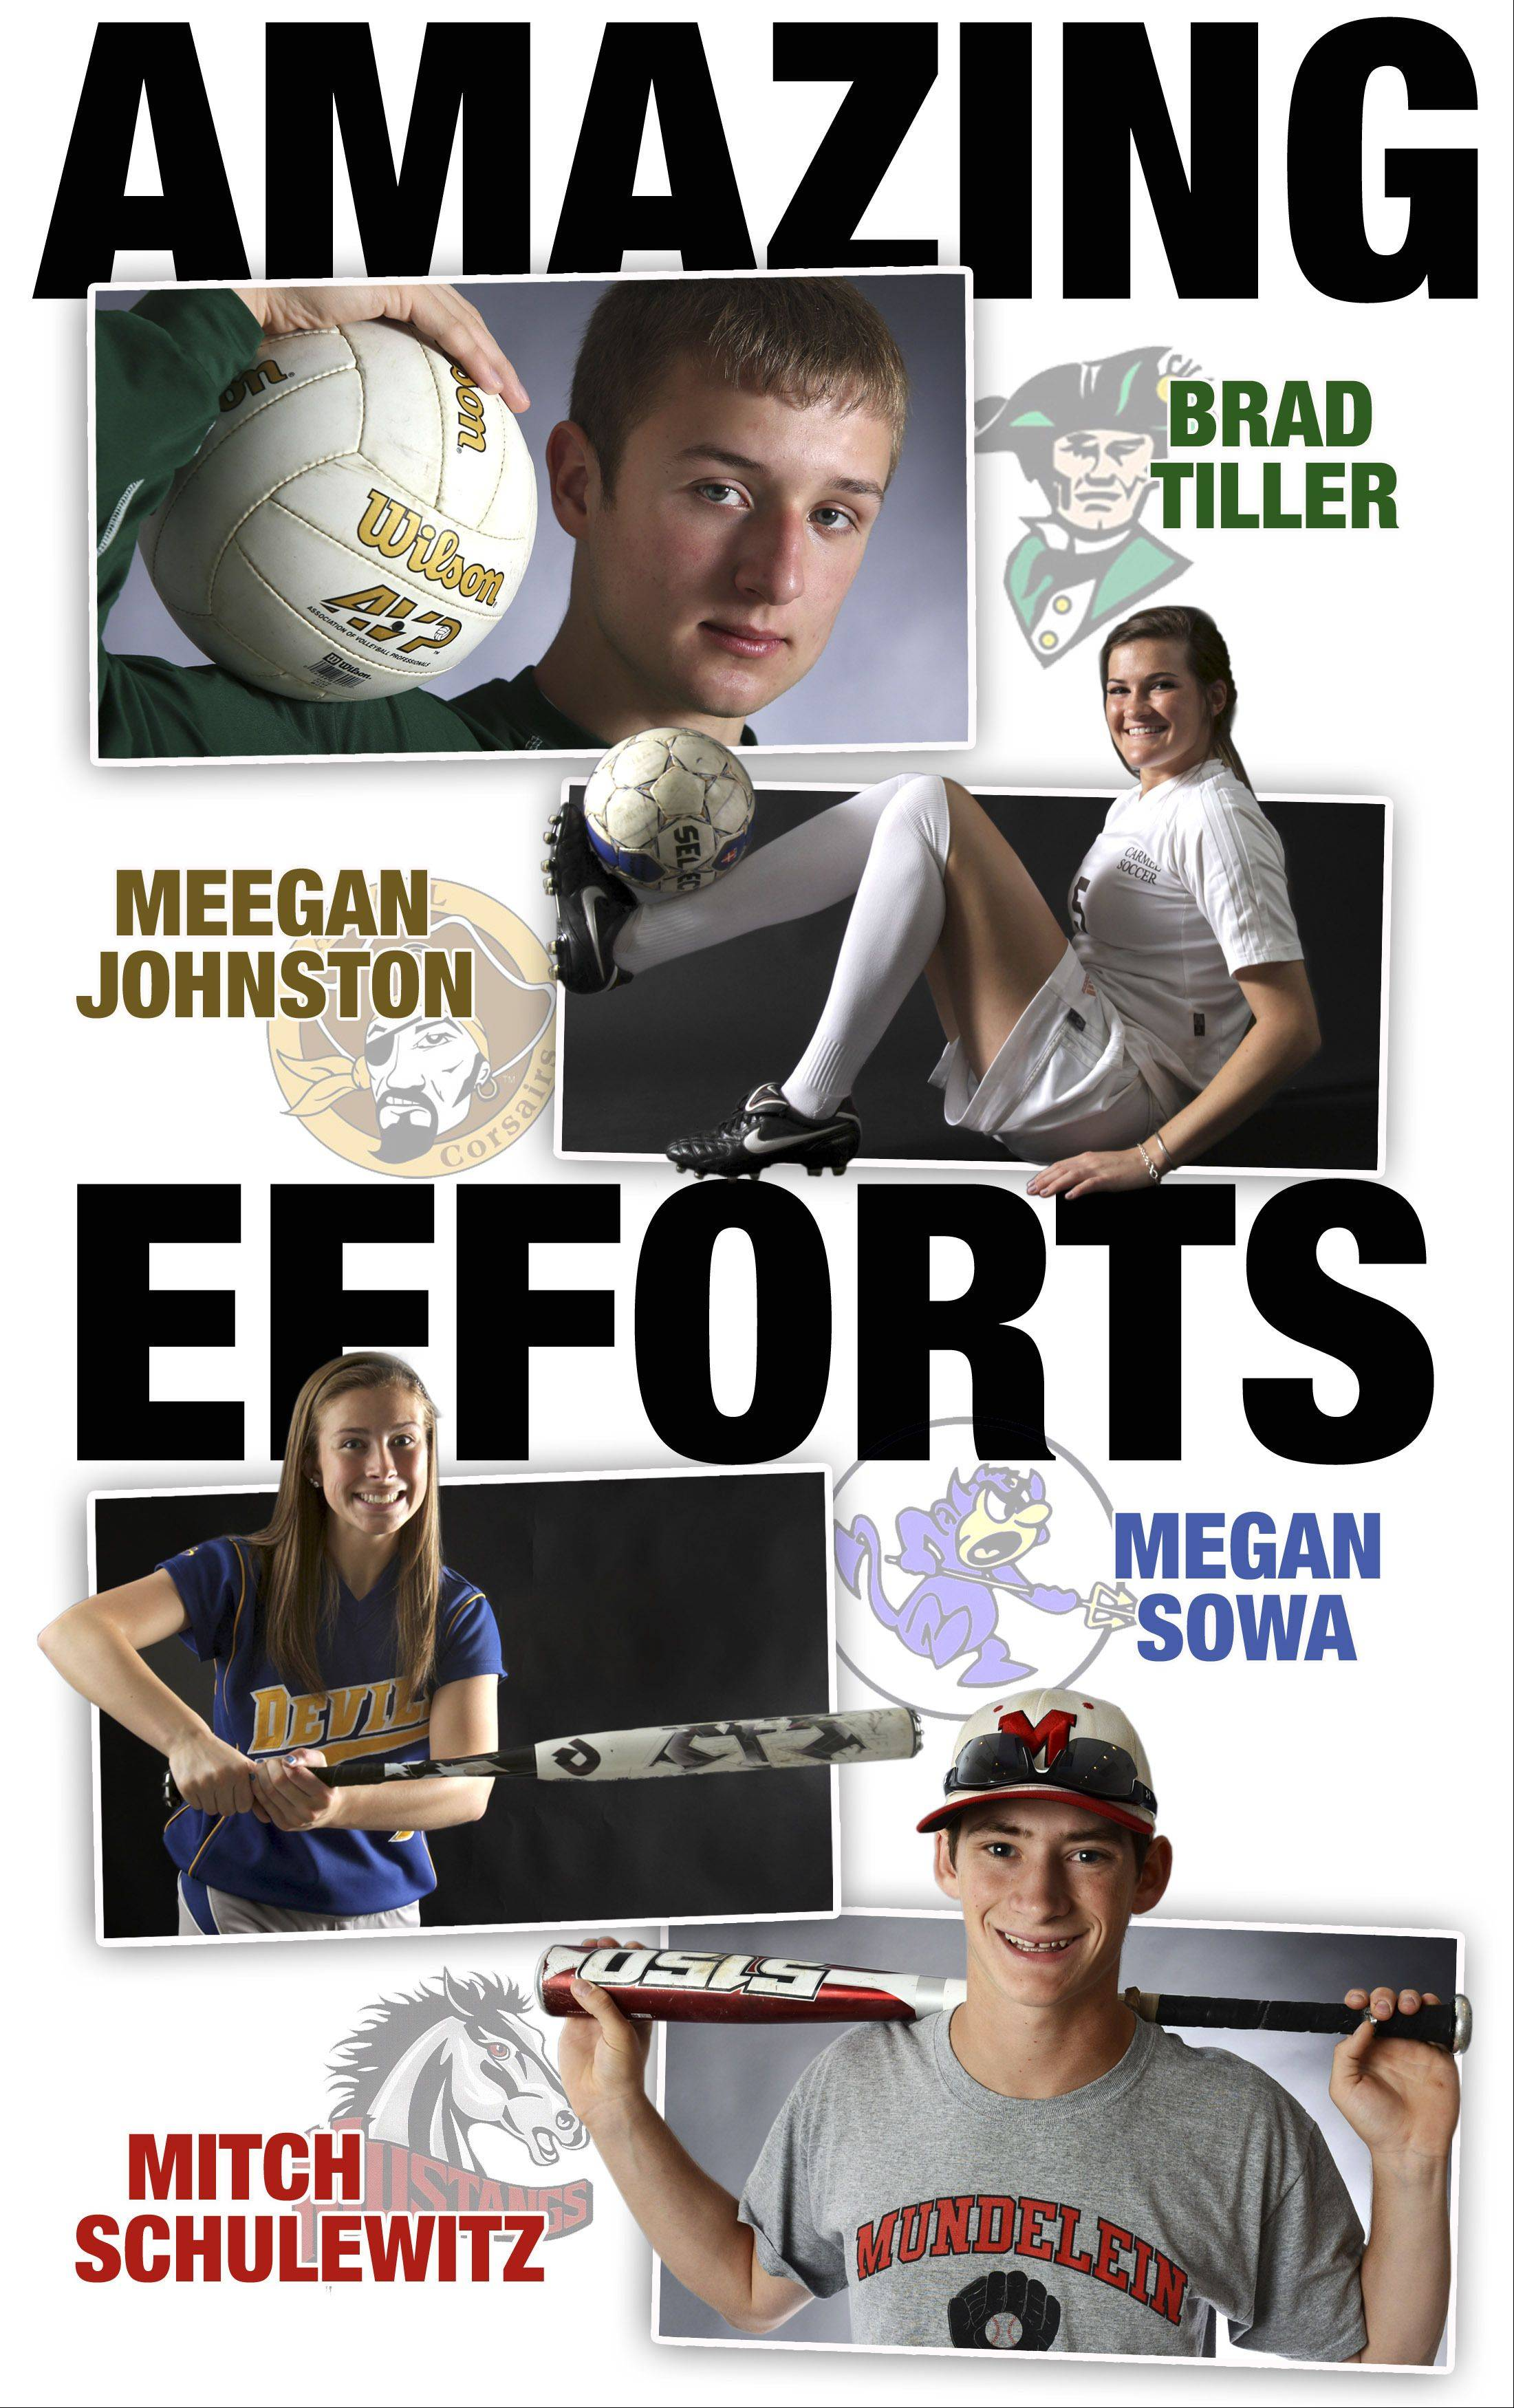 Lake County All-Area Team Captains for Spring 2013 are Brad Tiller, Meegan Johnston, Megan Sowa, and Mitch Schulewitz.